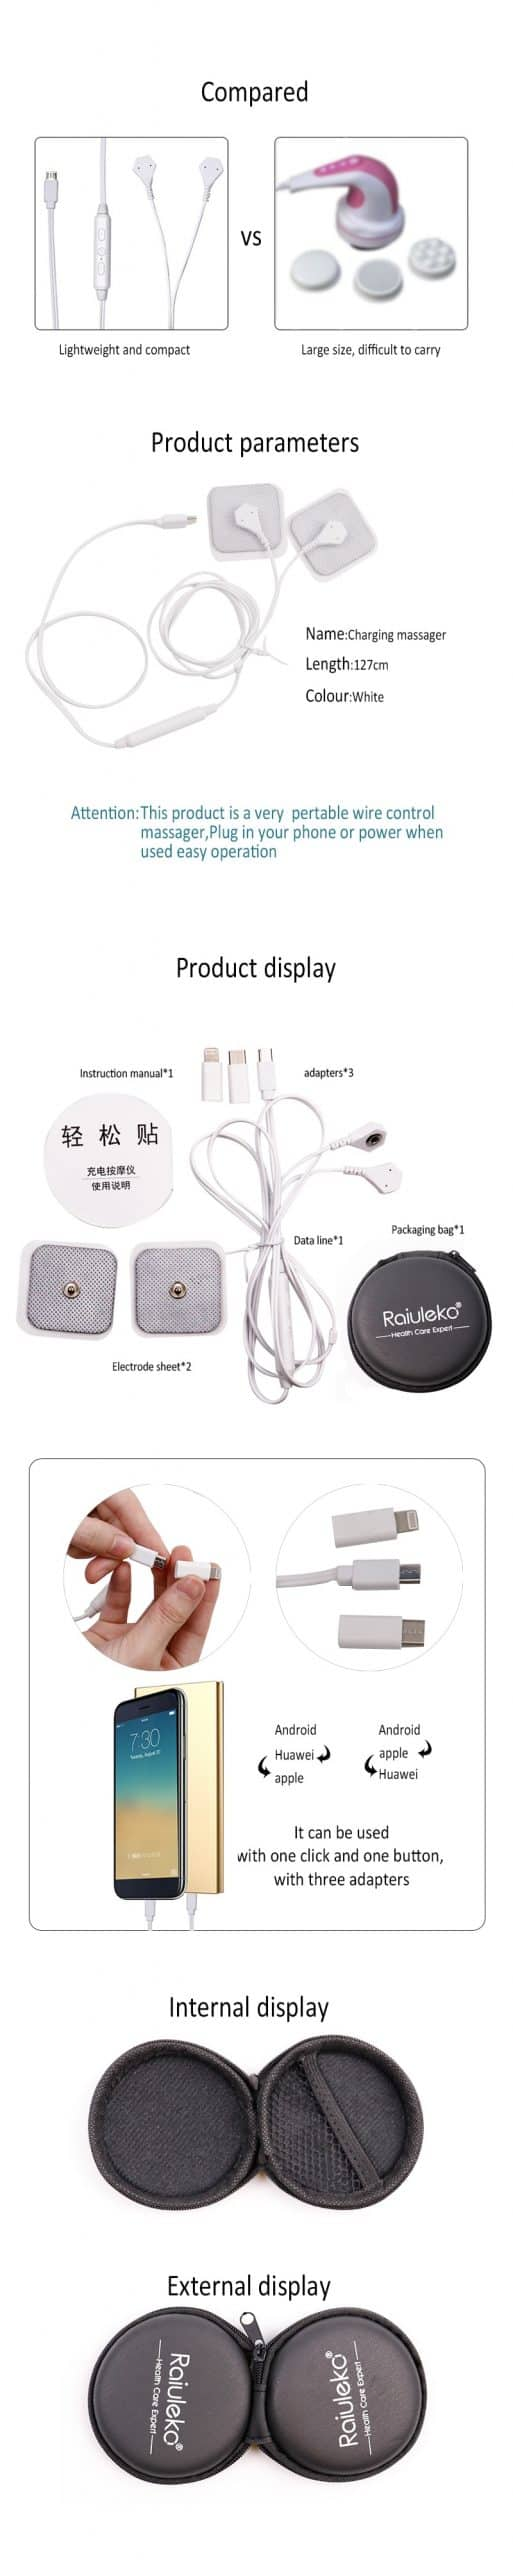 USB Portable Mini Pulse Body Phone Massager Mobile Phone Control Body Electrode Massage EMS TENS Relax Muscle Stimulator Therapy